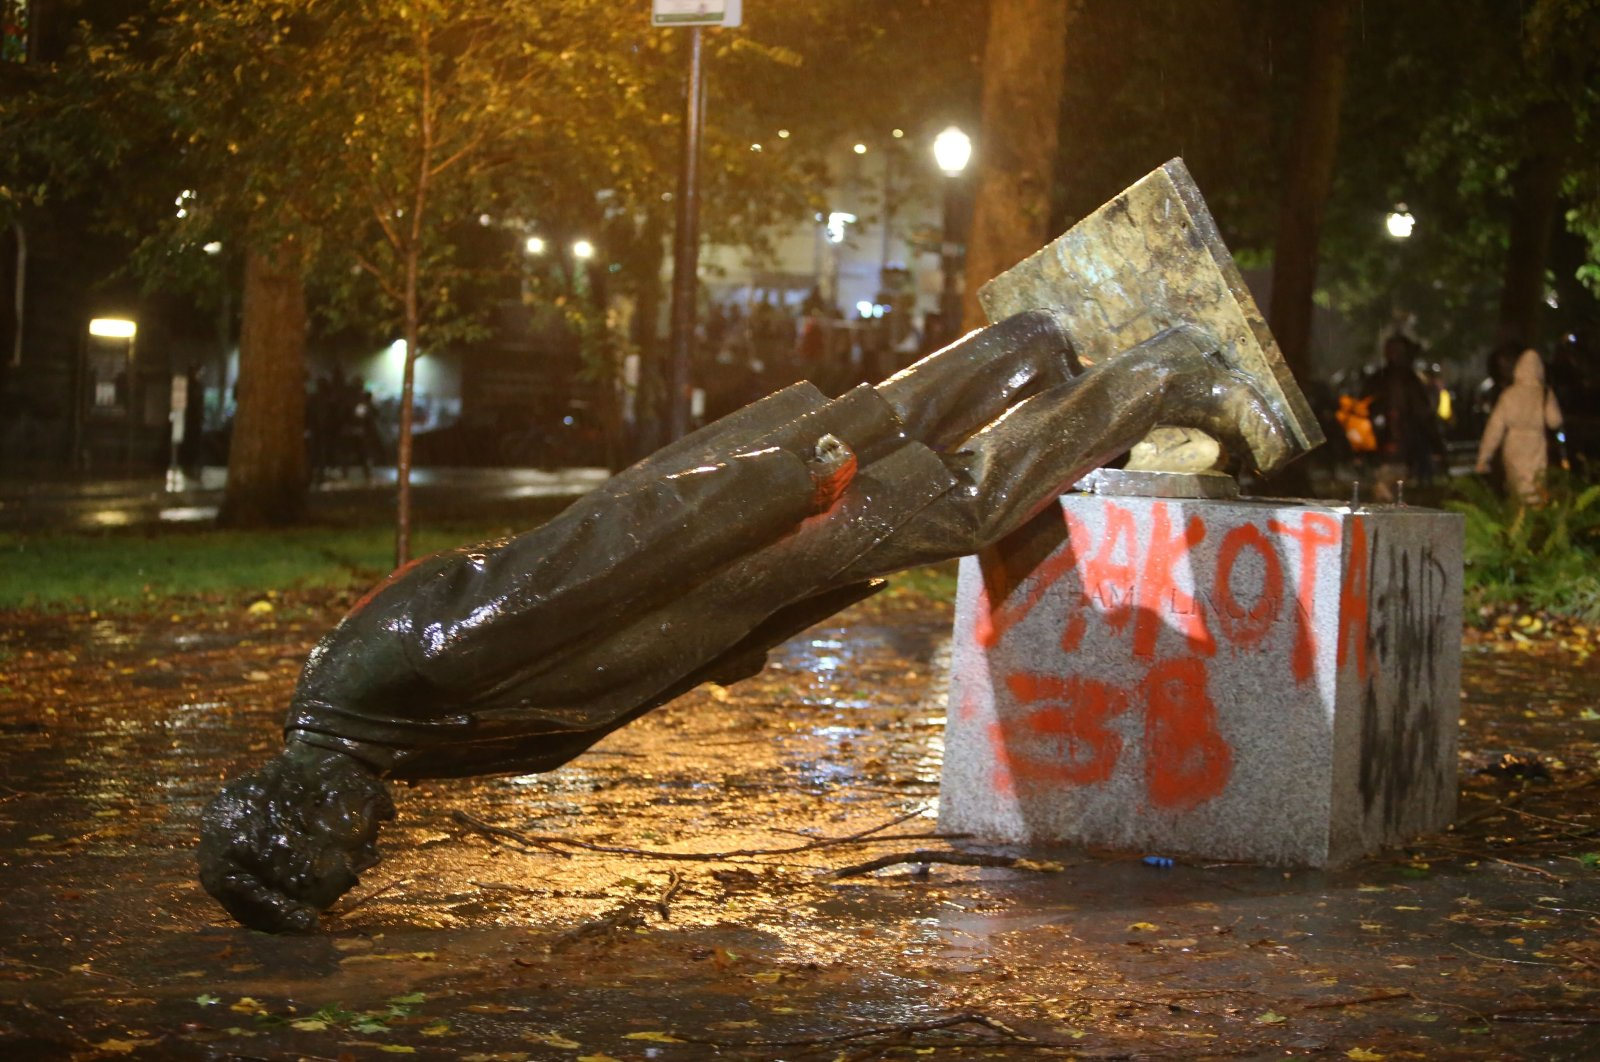 A group of protesters toppled statues of former Presidents Theodore Roosevelt and Abraham Lincoln in Portland's South Park Block, Oregon, U.S., Oct. 11, 2020. (AP Photo)